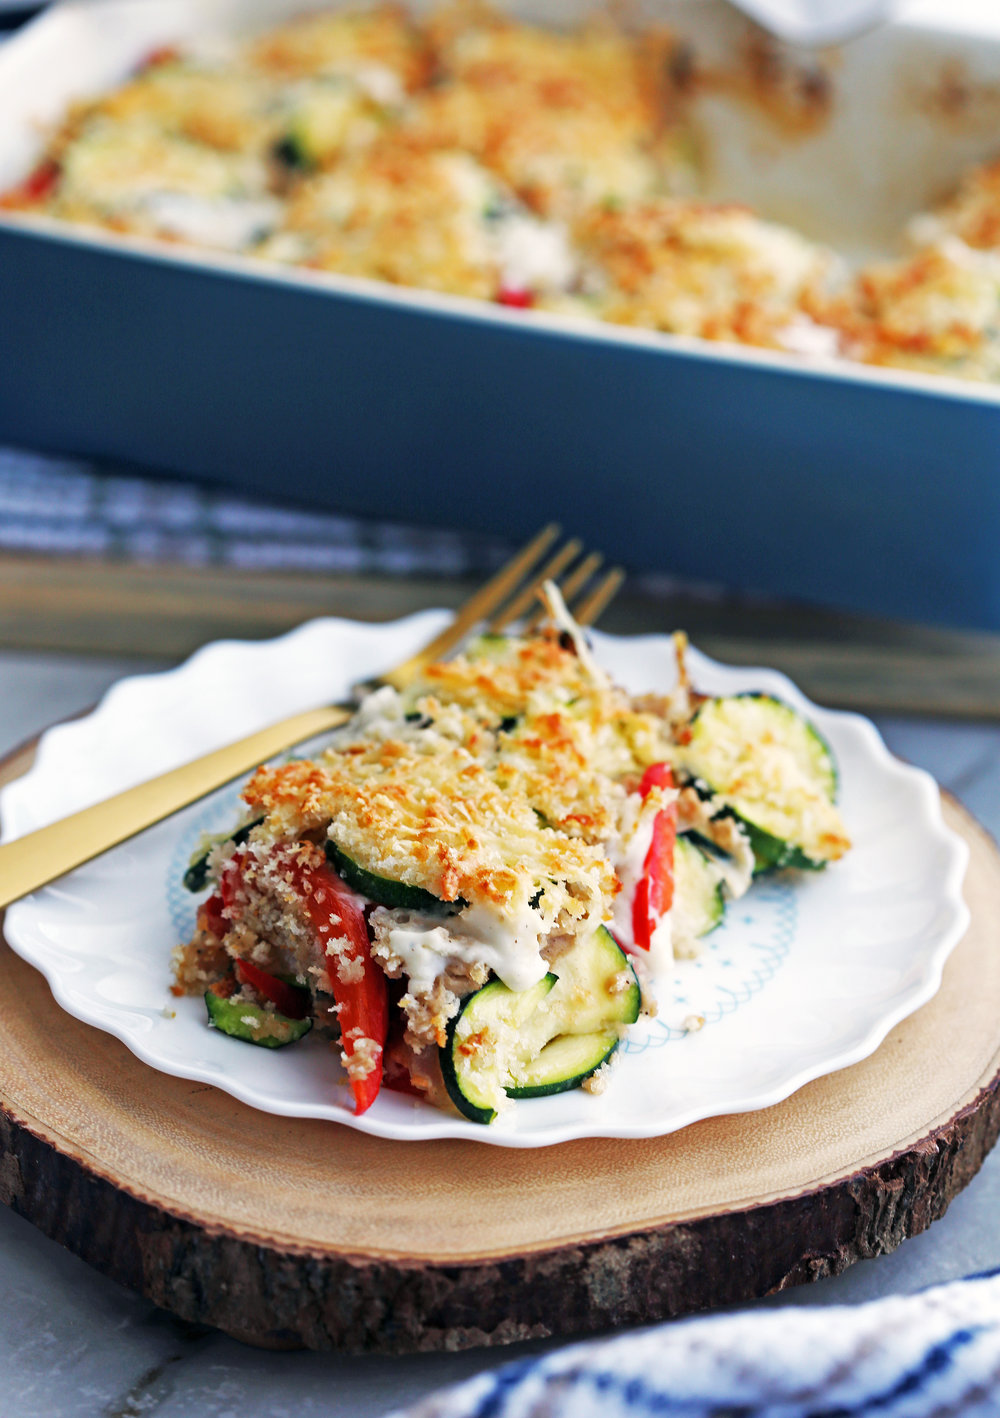 A piece of Zucchini Gratin with Gruyère and Panko Breadcrumbs on a white plate along with a fork.